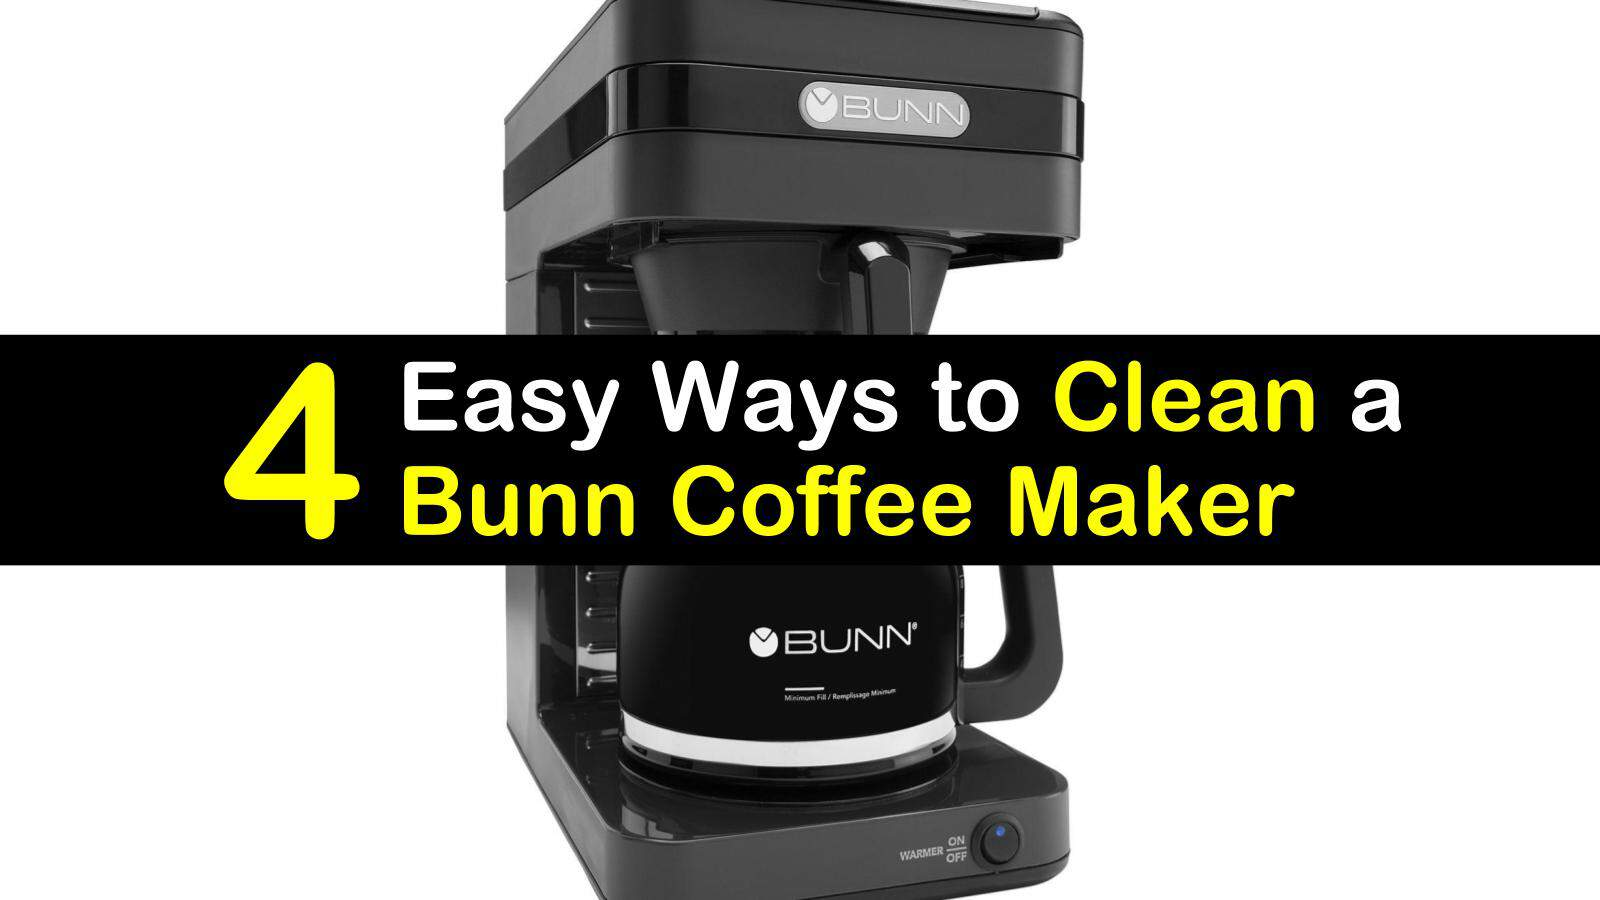 how to clean a Bunn coffee maker titleimg1